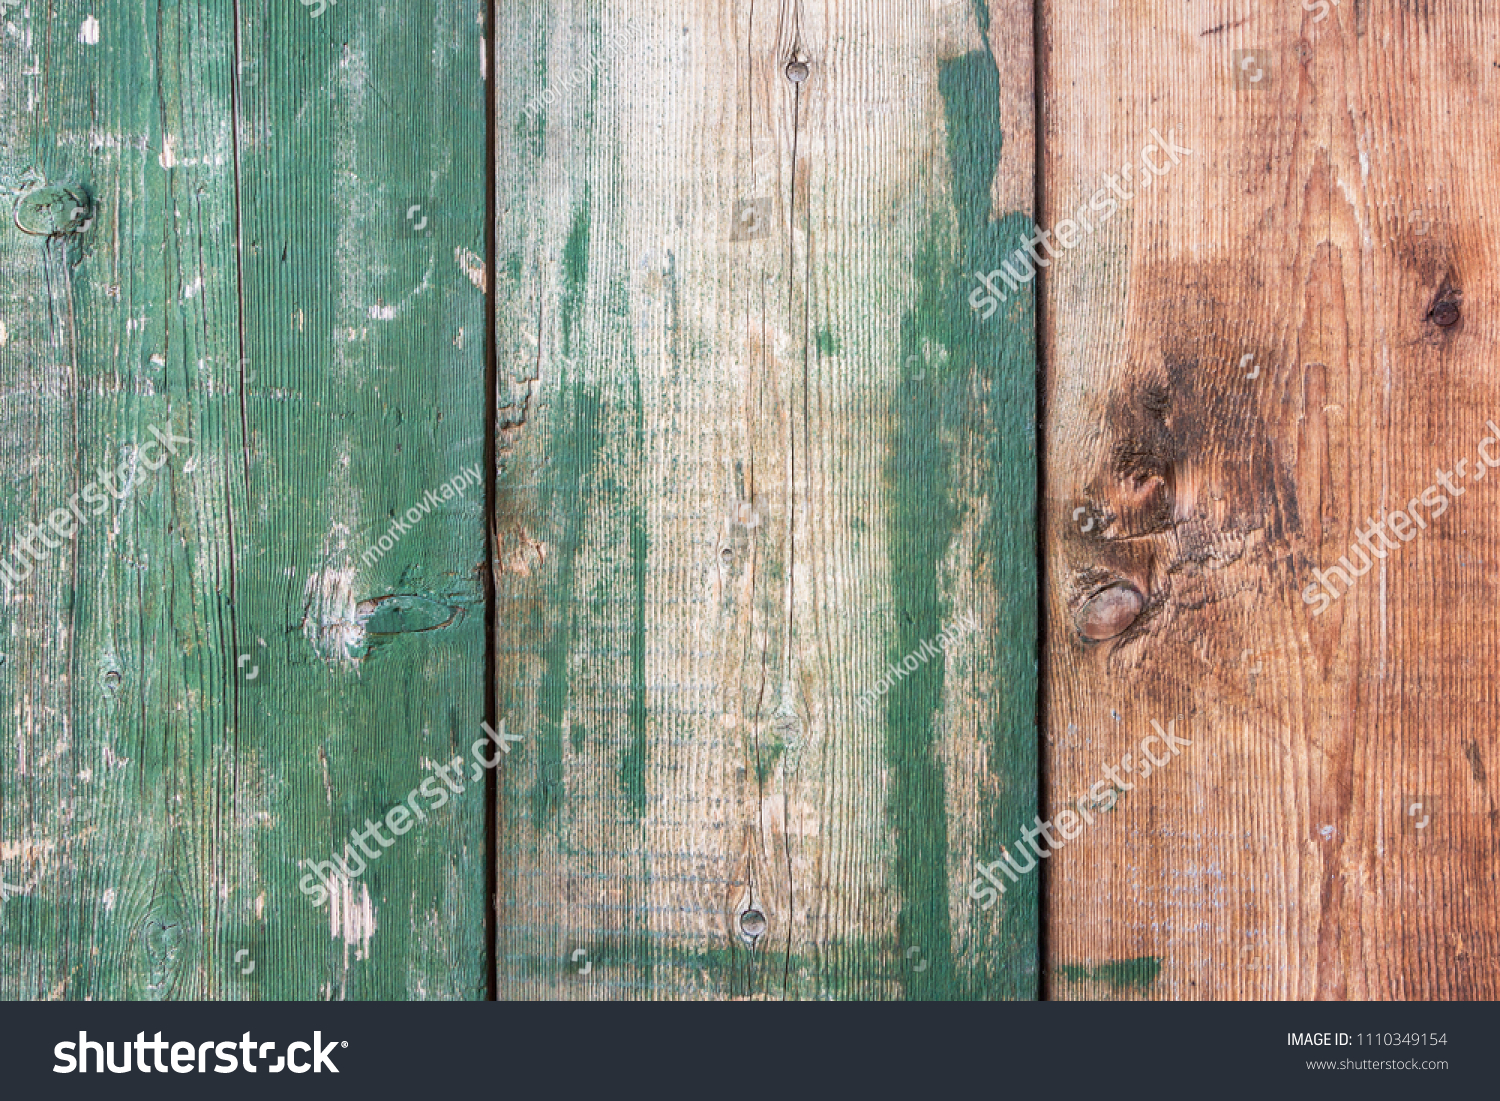 Green Barn Wooden Wall Paneling Wide Stock Photo Edit Now 1110349154